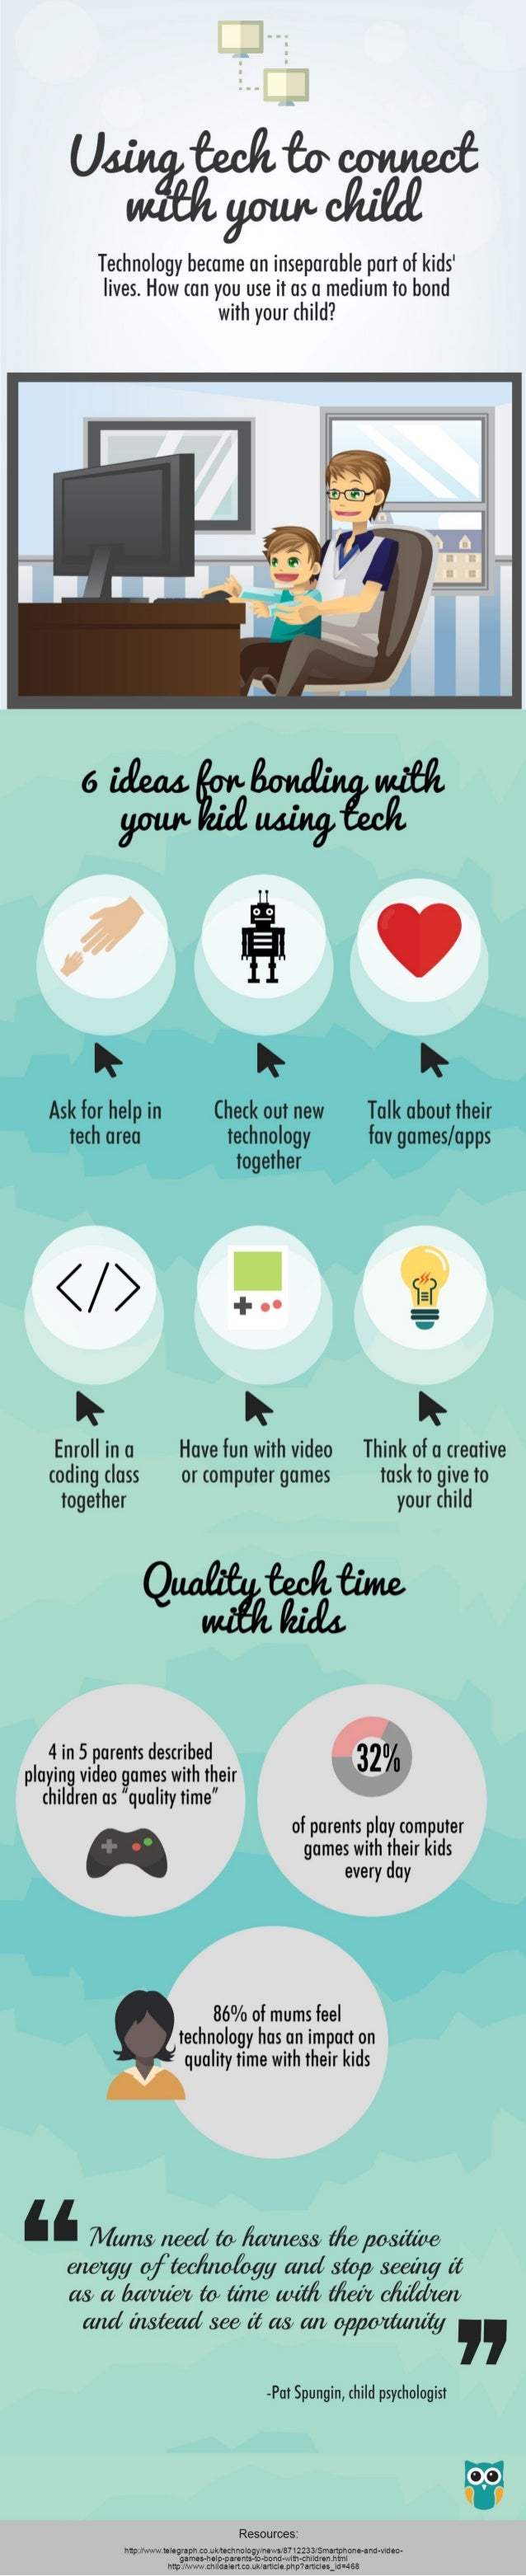 Using tech to connect with your child